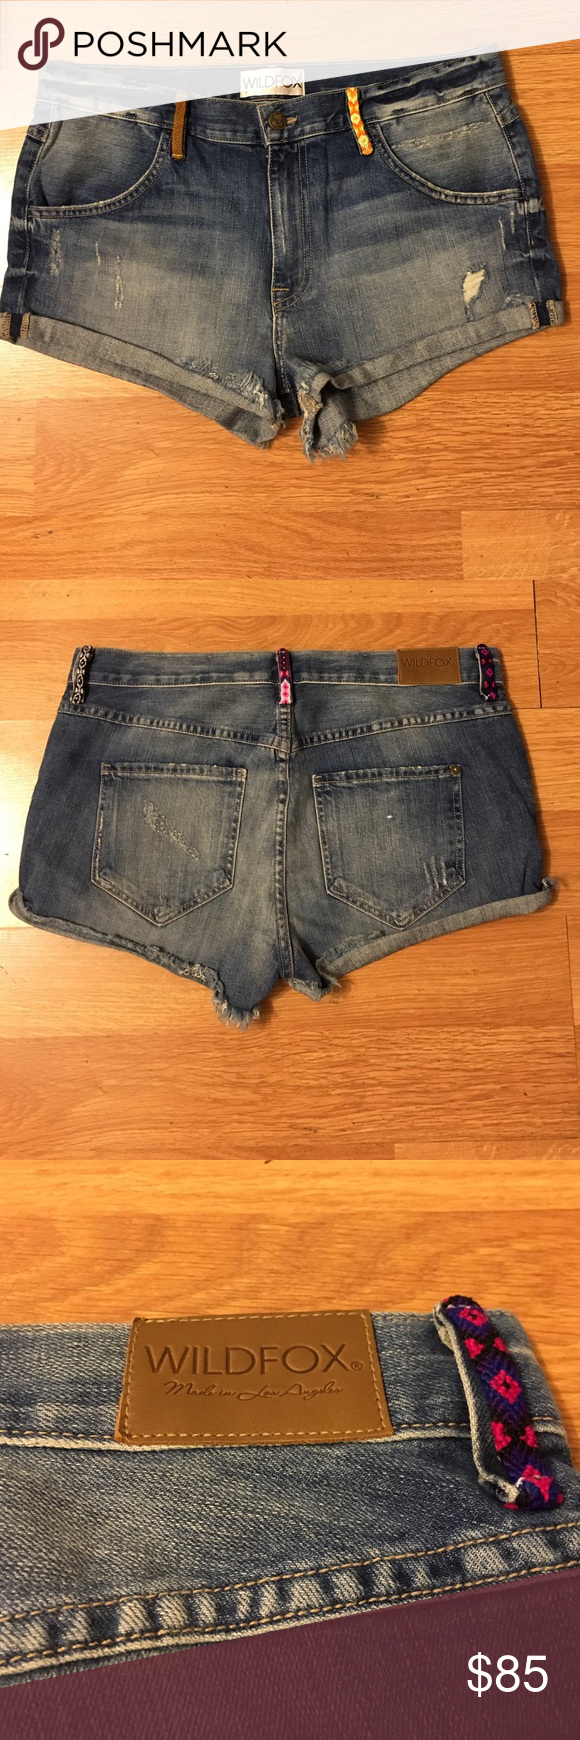 """Wildfox shorts Wildfox denim shorts-style is """"The Michelle slouchy boyfriend short"""". Wash Name is """"kismet"""", size is 28. Excellent condition. Wildfox Shorts Jean Shorts"""